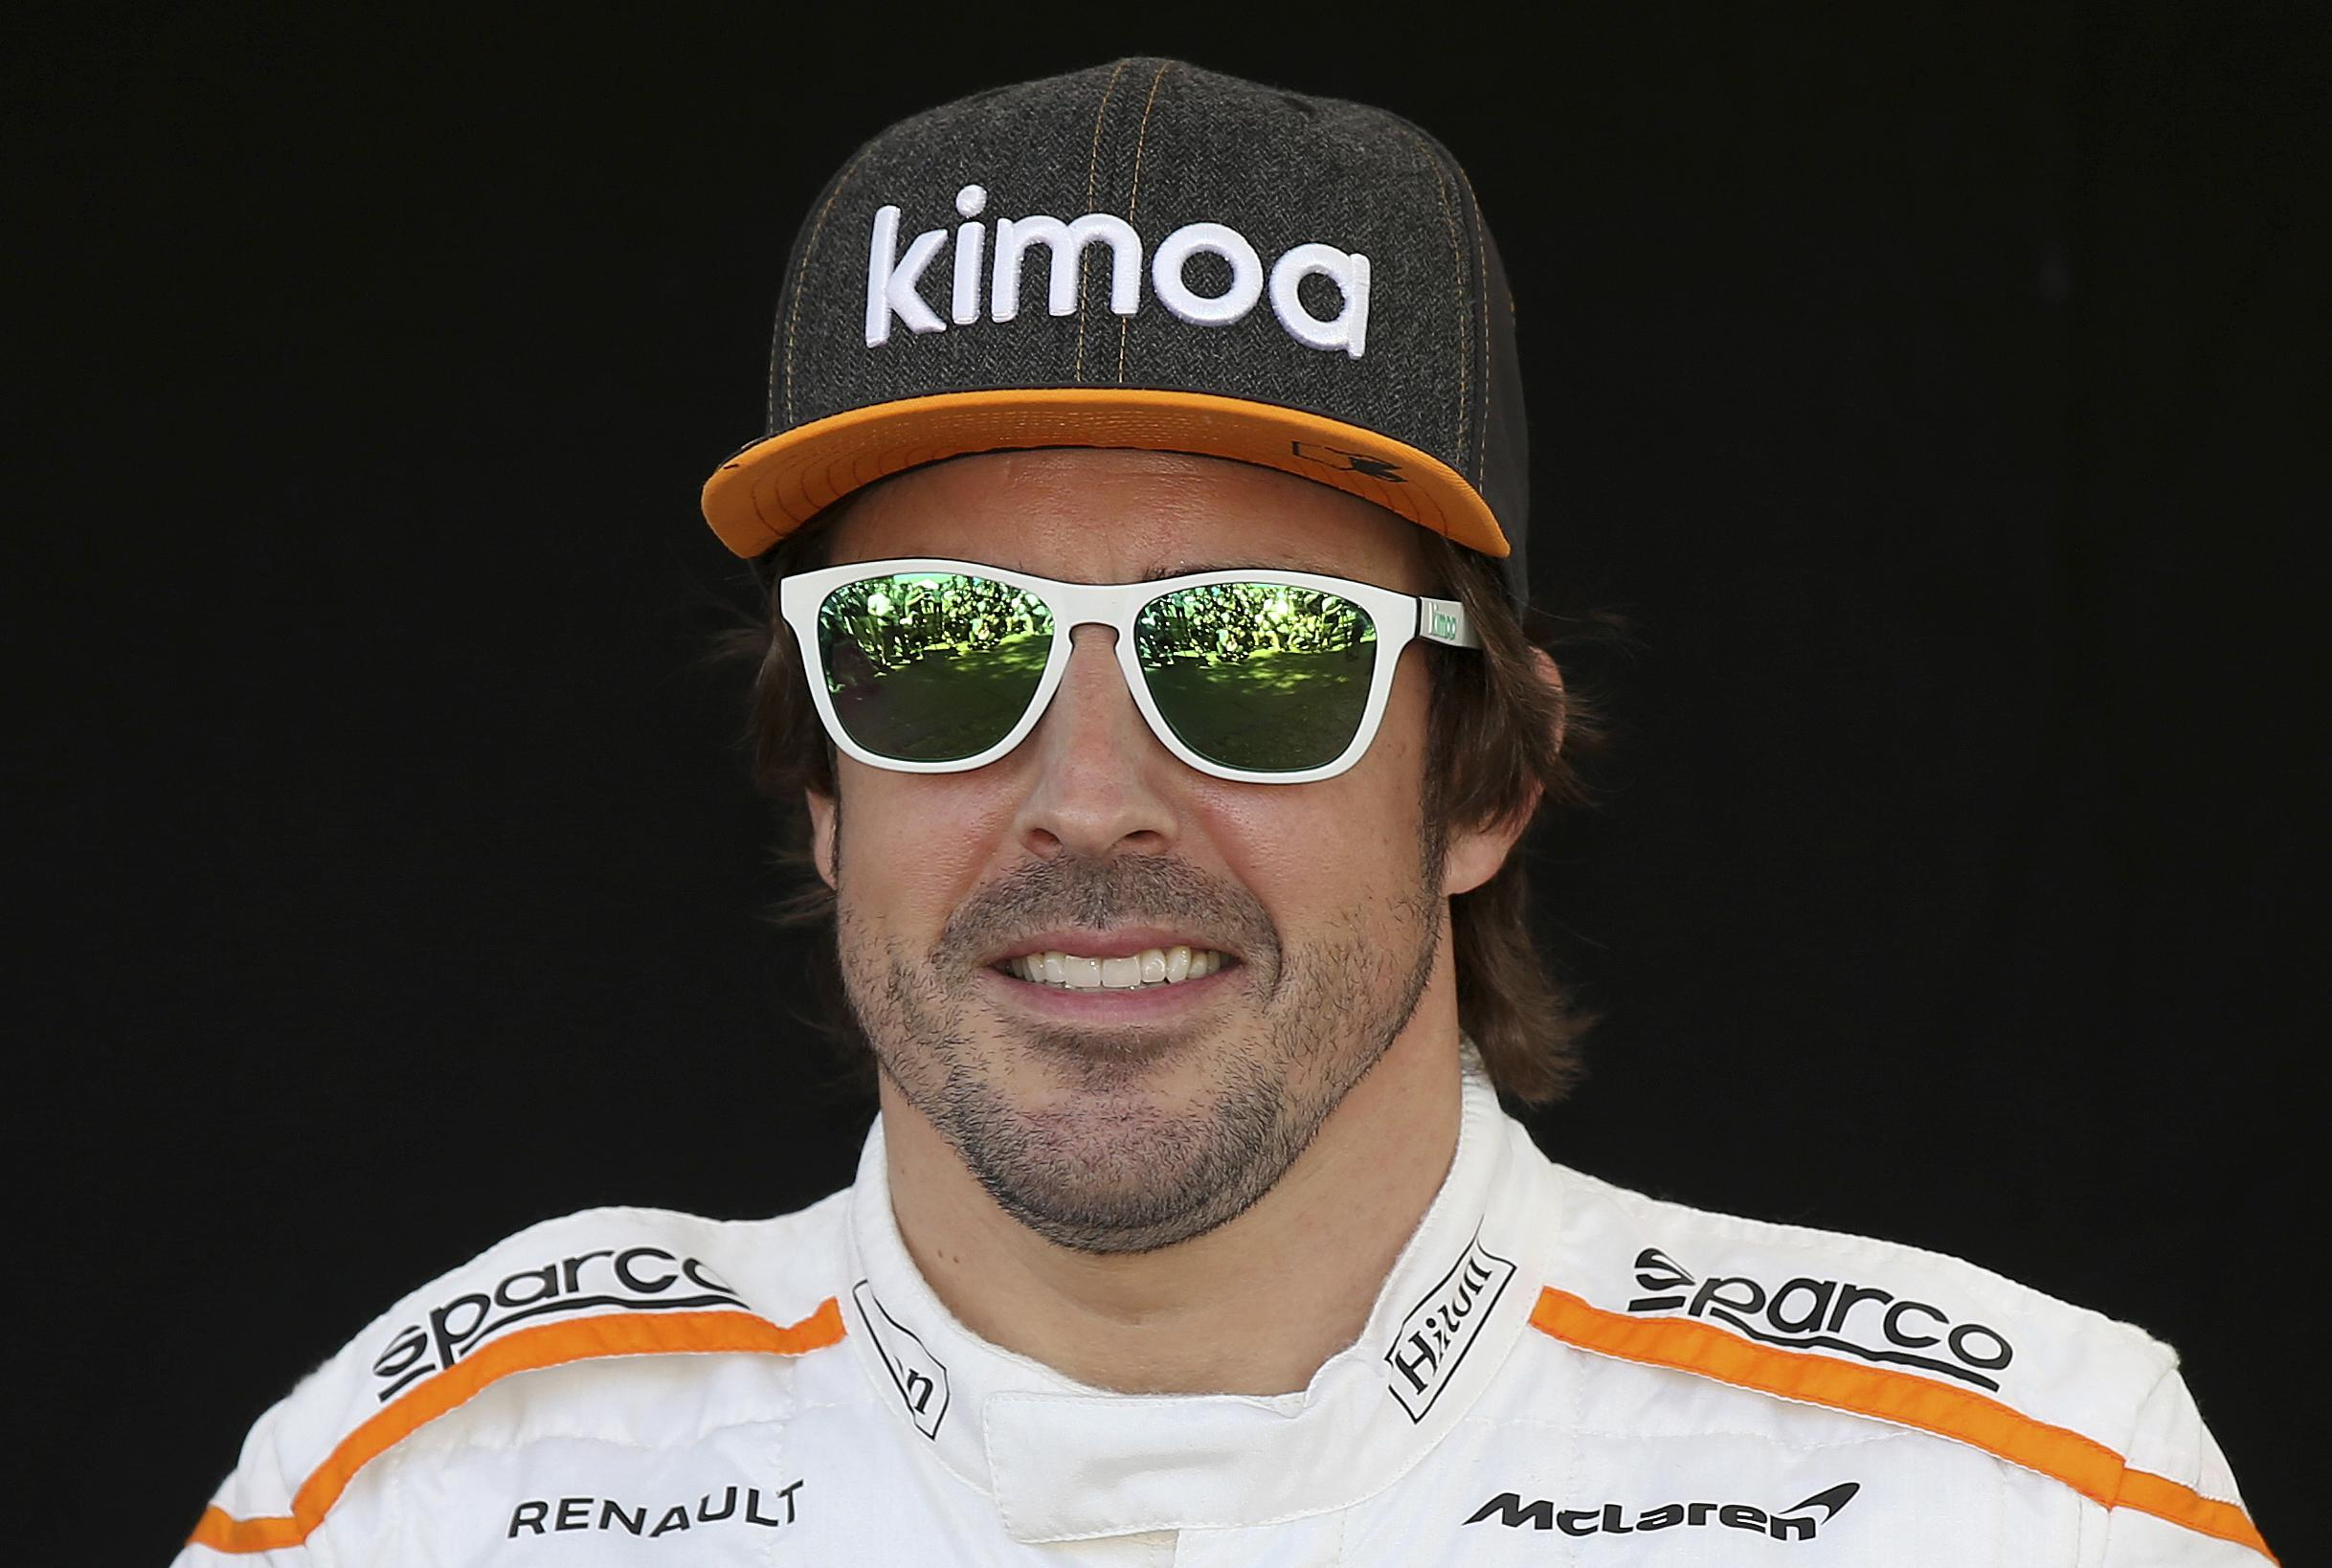 Fernando Alonso F1 Grand Prix 2 Time F1 Champion Fernando Alonso Leaving At End Of Season Swx